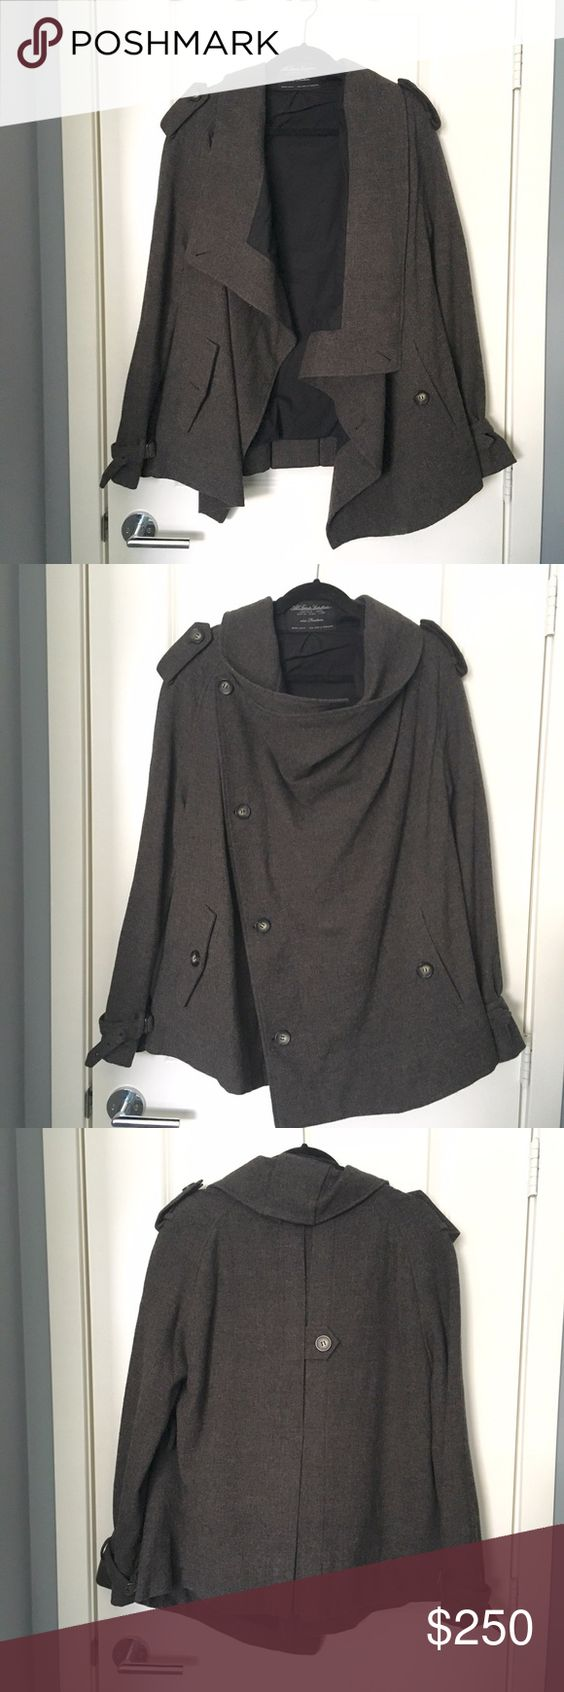 All Saints Wool Trench Coat Size: 14 Fits: like a 10. I am a size 6-8. Color: brown Details: 2 button pockets and button encloser, can be worn 2 ways Condition: Like New Material: wool exterior, cotton inner lining Retail: $468 + tax All Saints Jackets & Coats Trench Coats